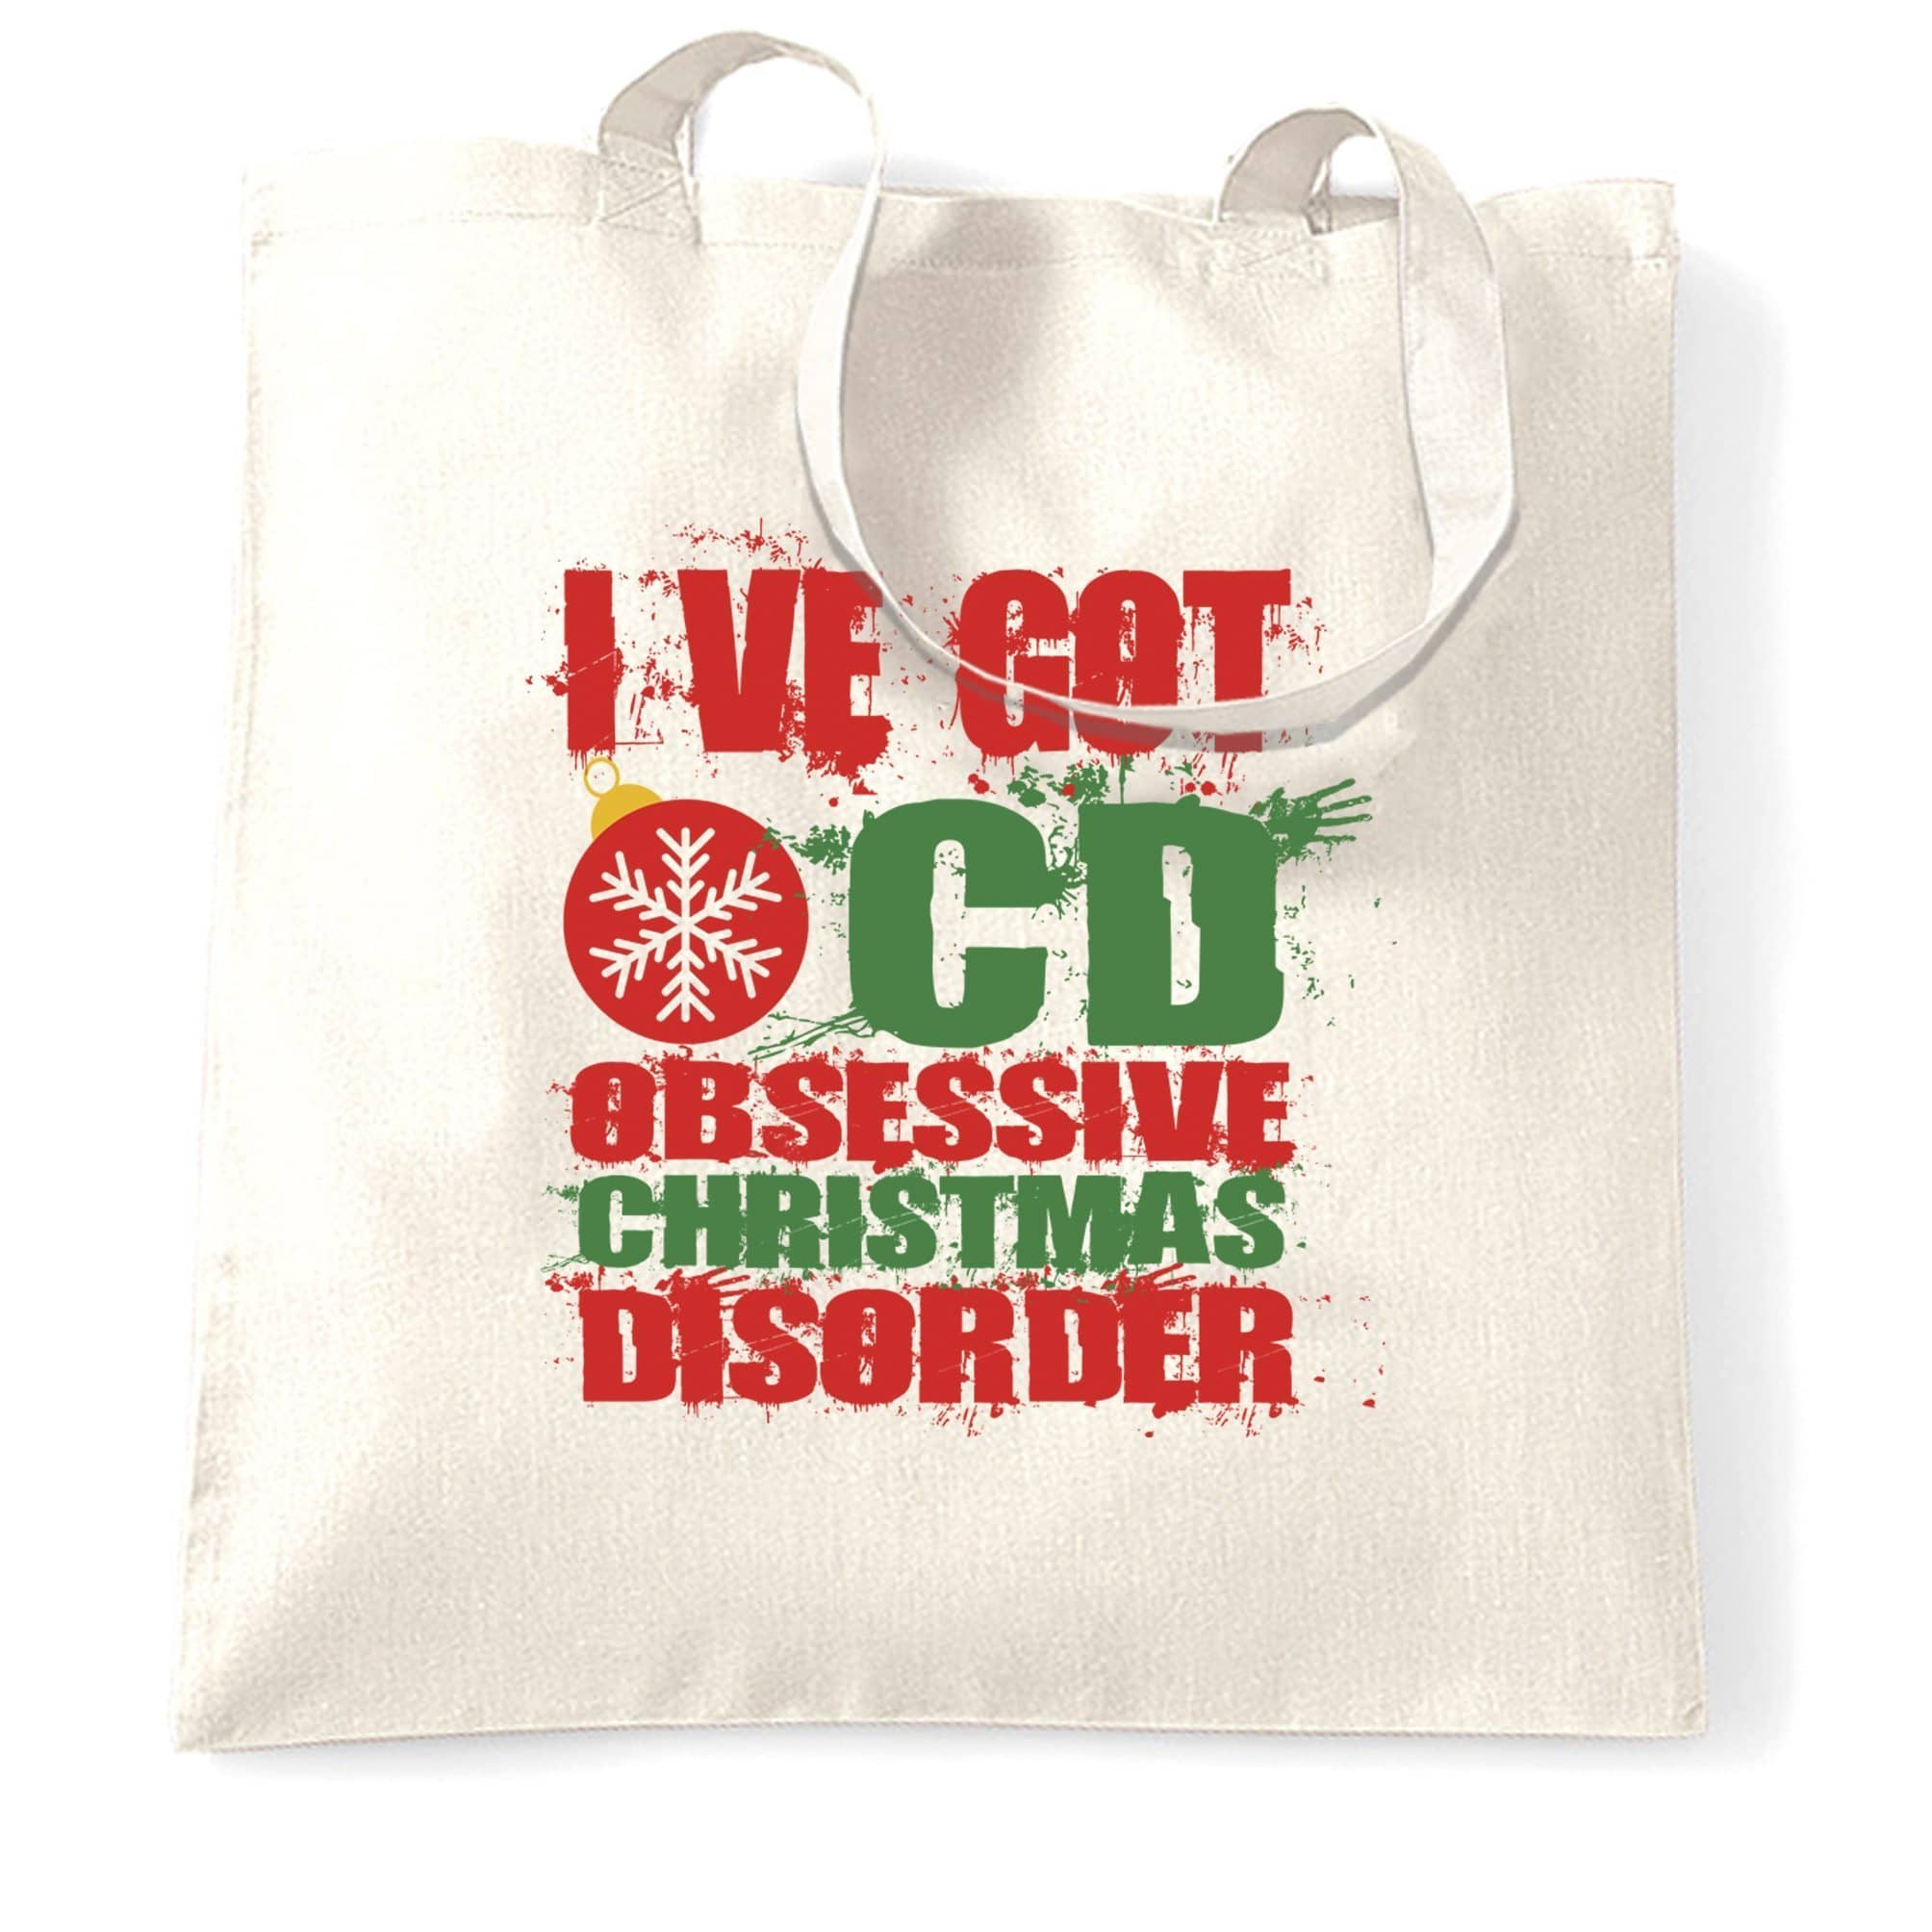 Christmas Tote Bag Obsessive Xmas Disorder OCD Joke